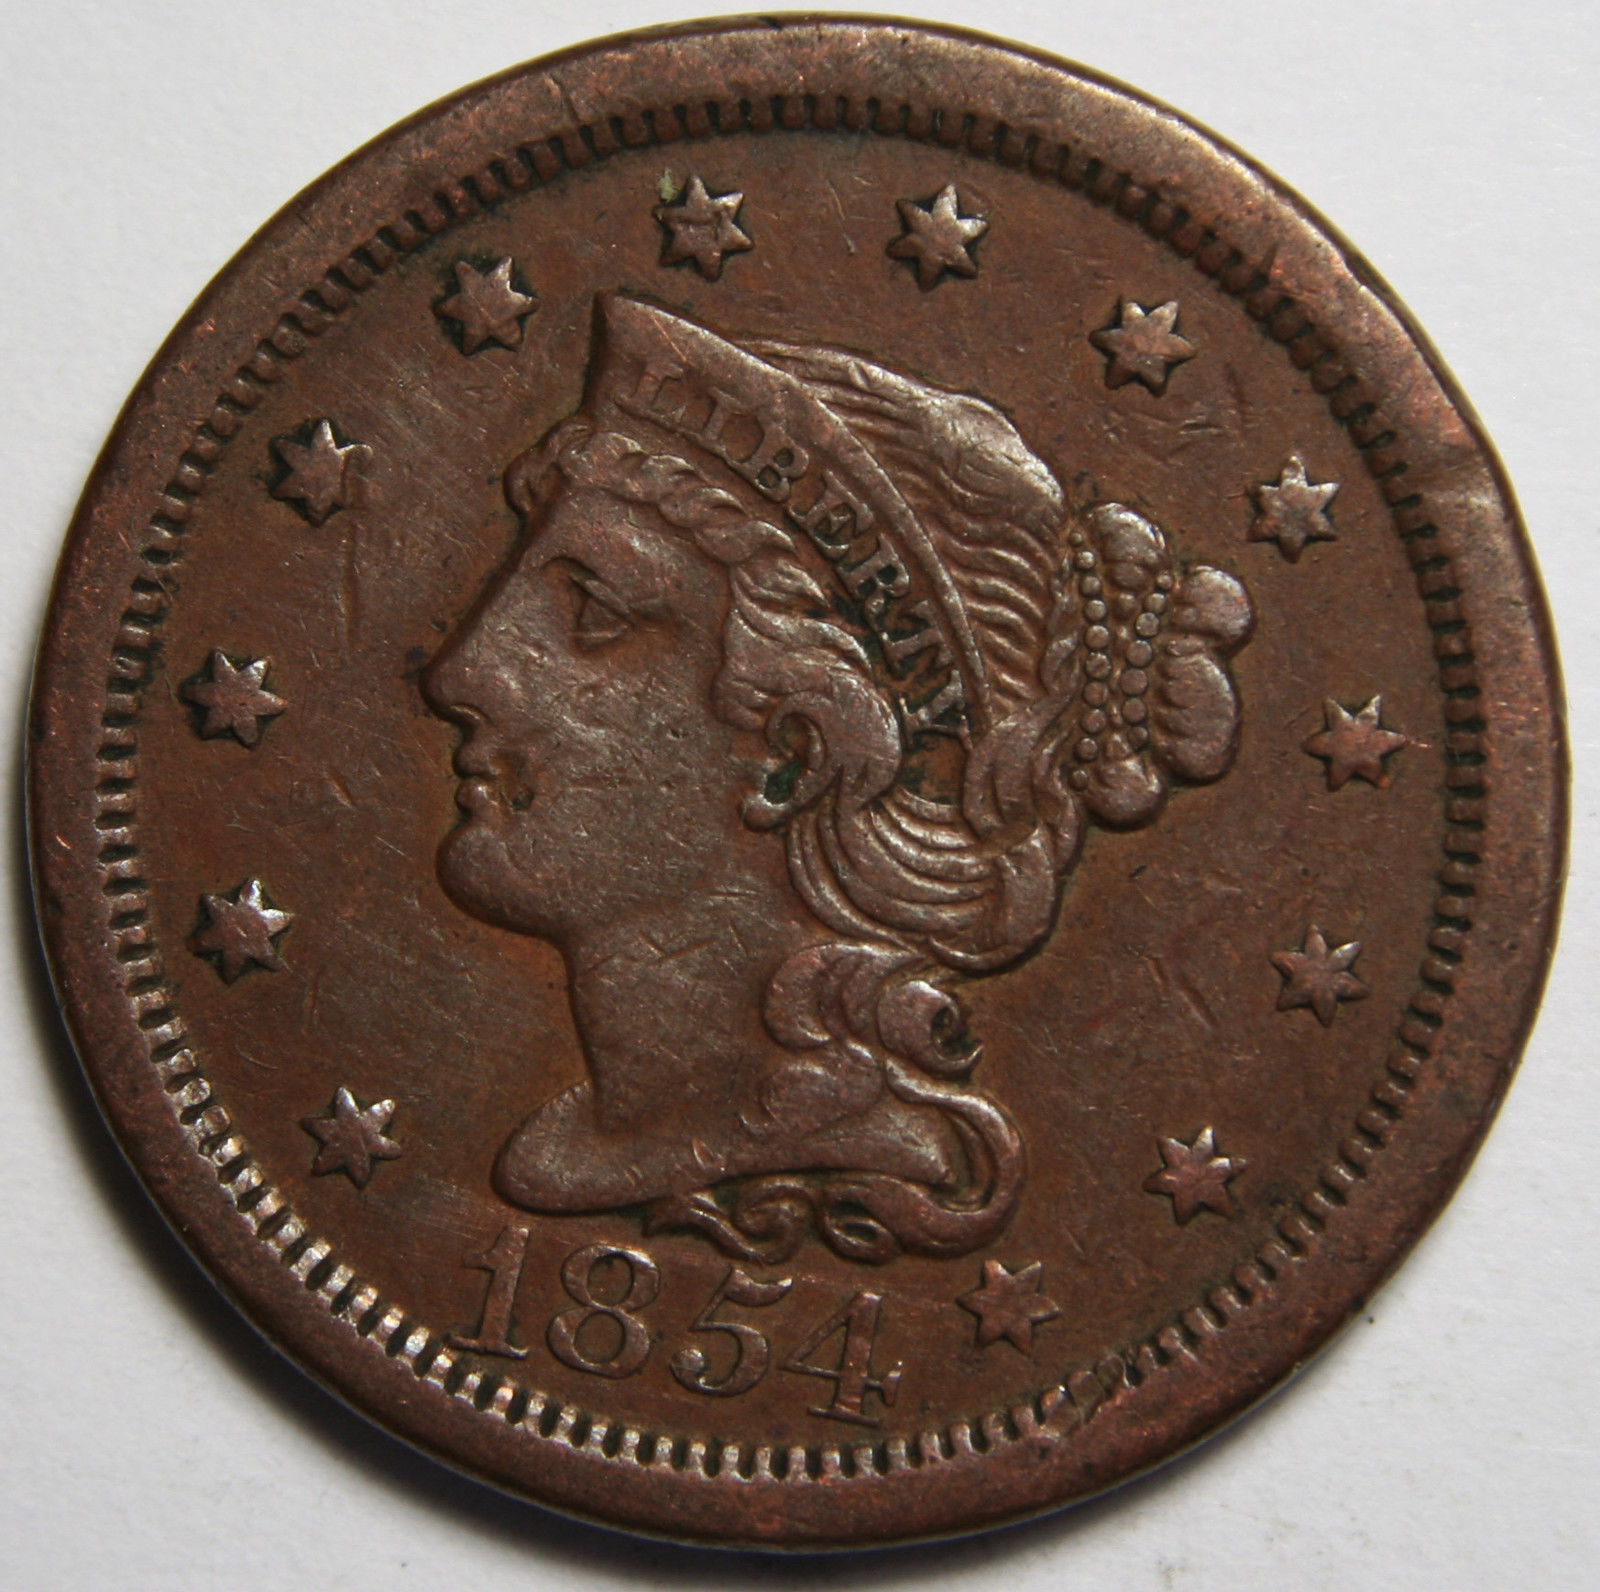 1854 Large Cent Liberty Braided Hair Head Coin Lot # MZ 4107